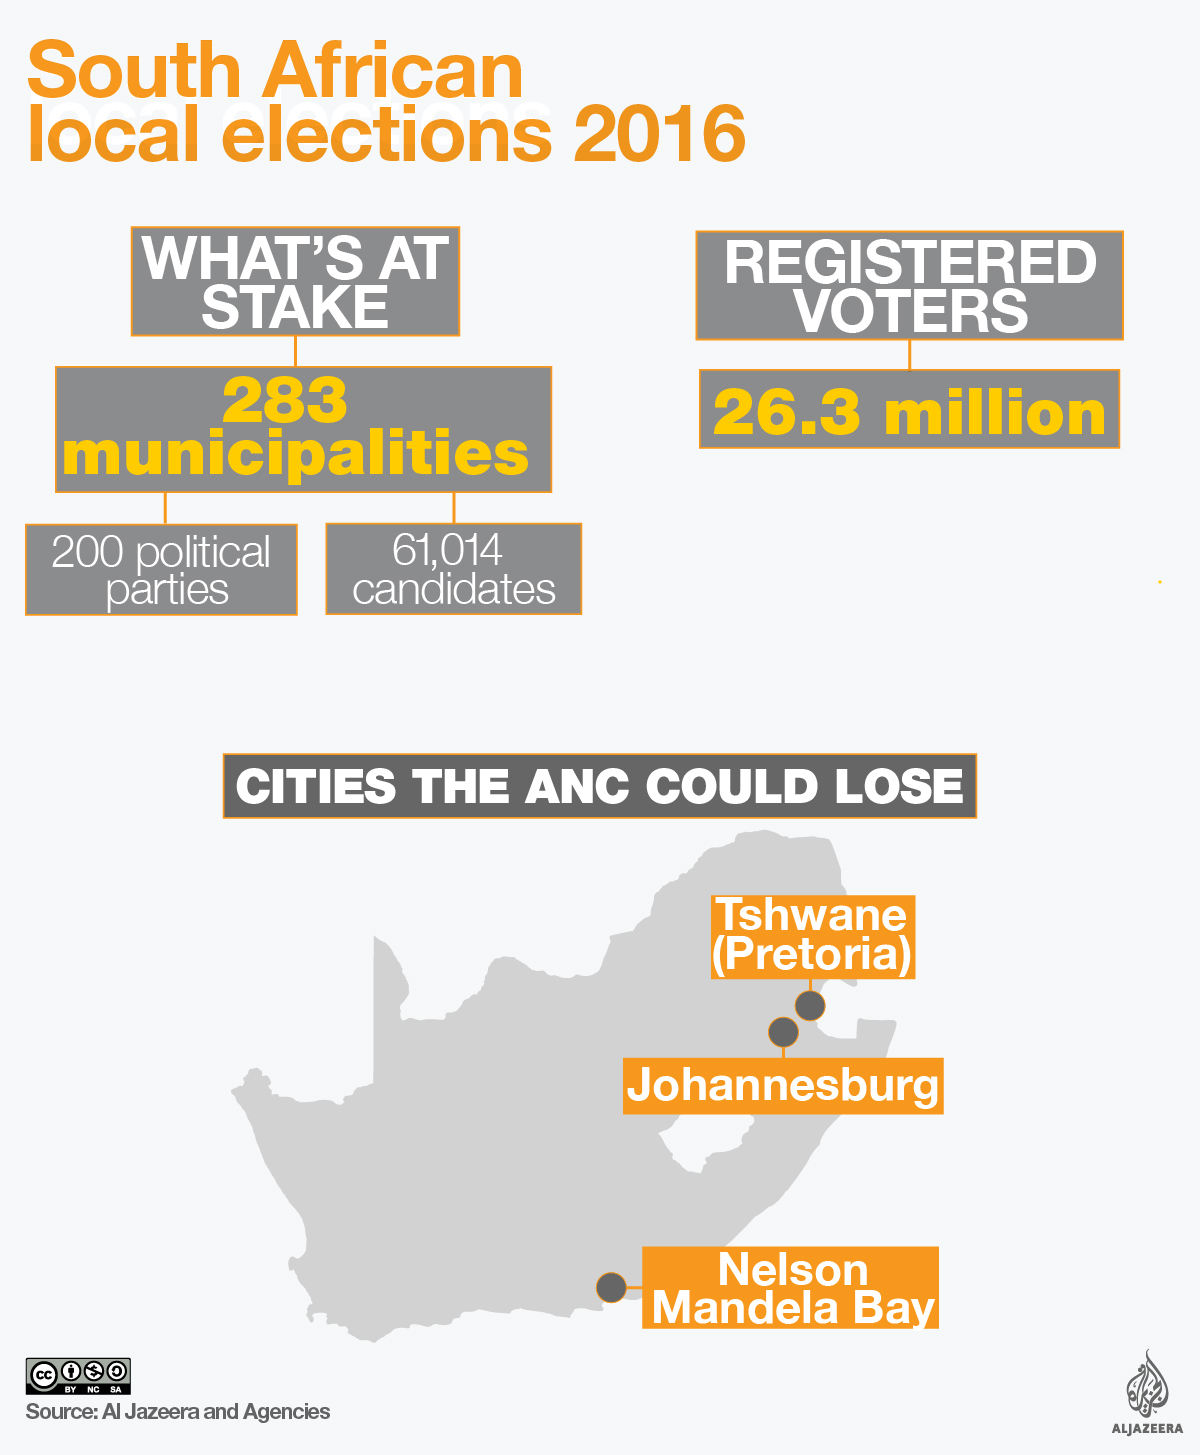 South Africa local elections 2016